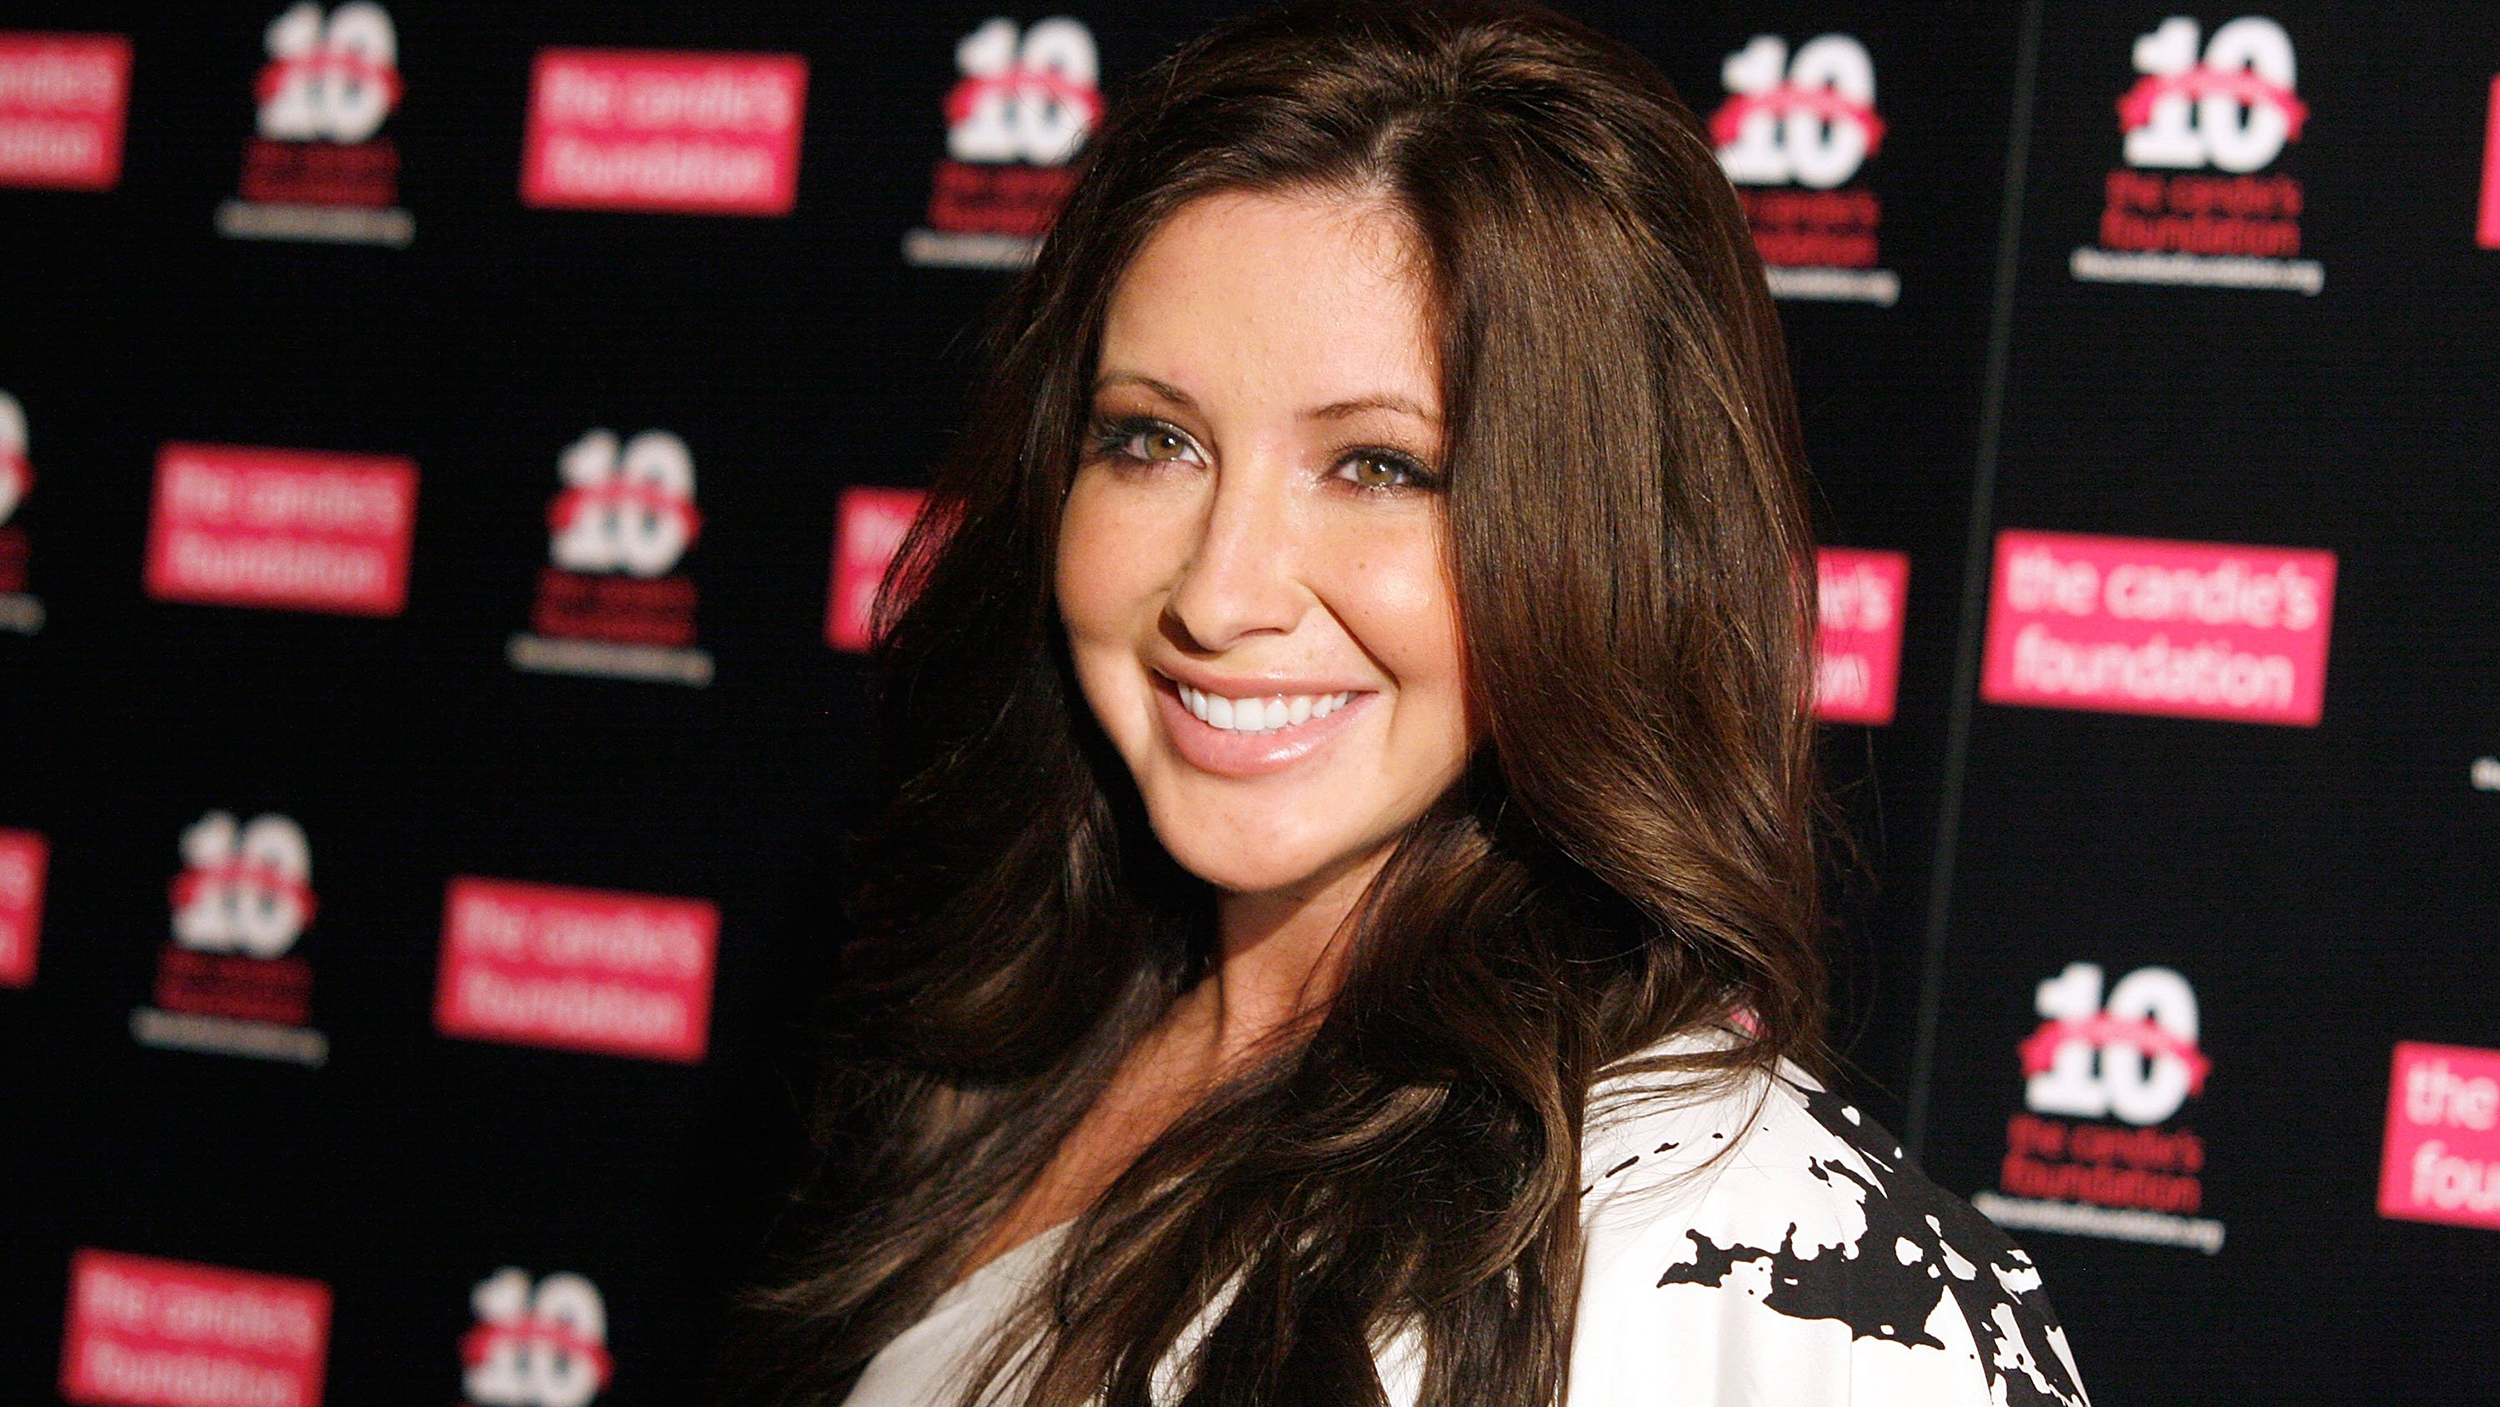 Who is bristol palin hookup now